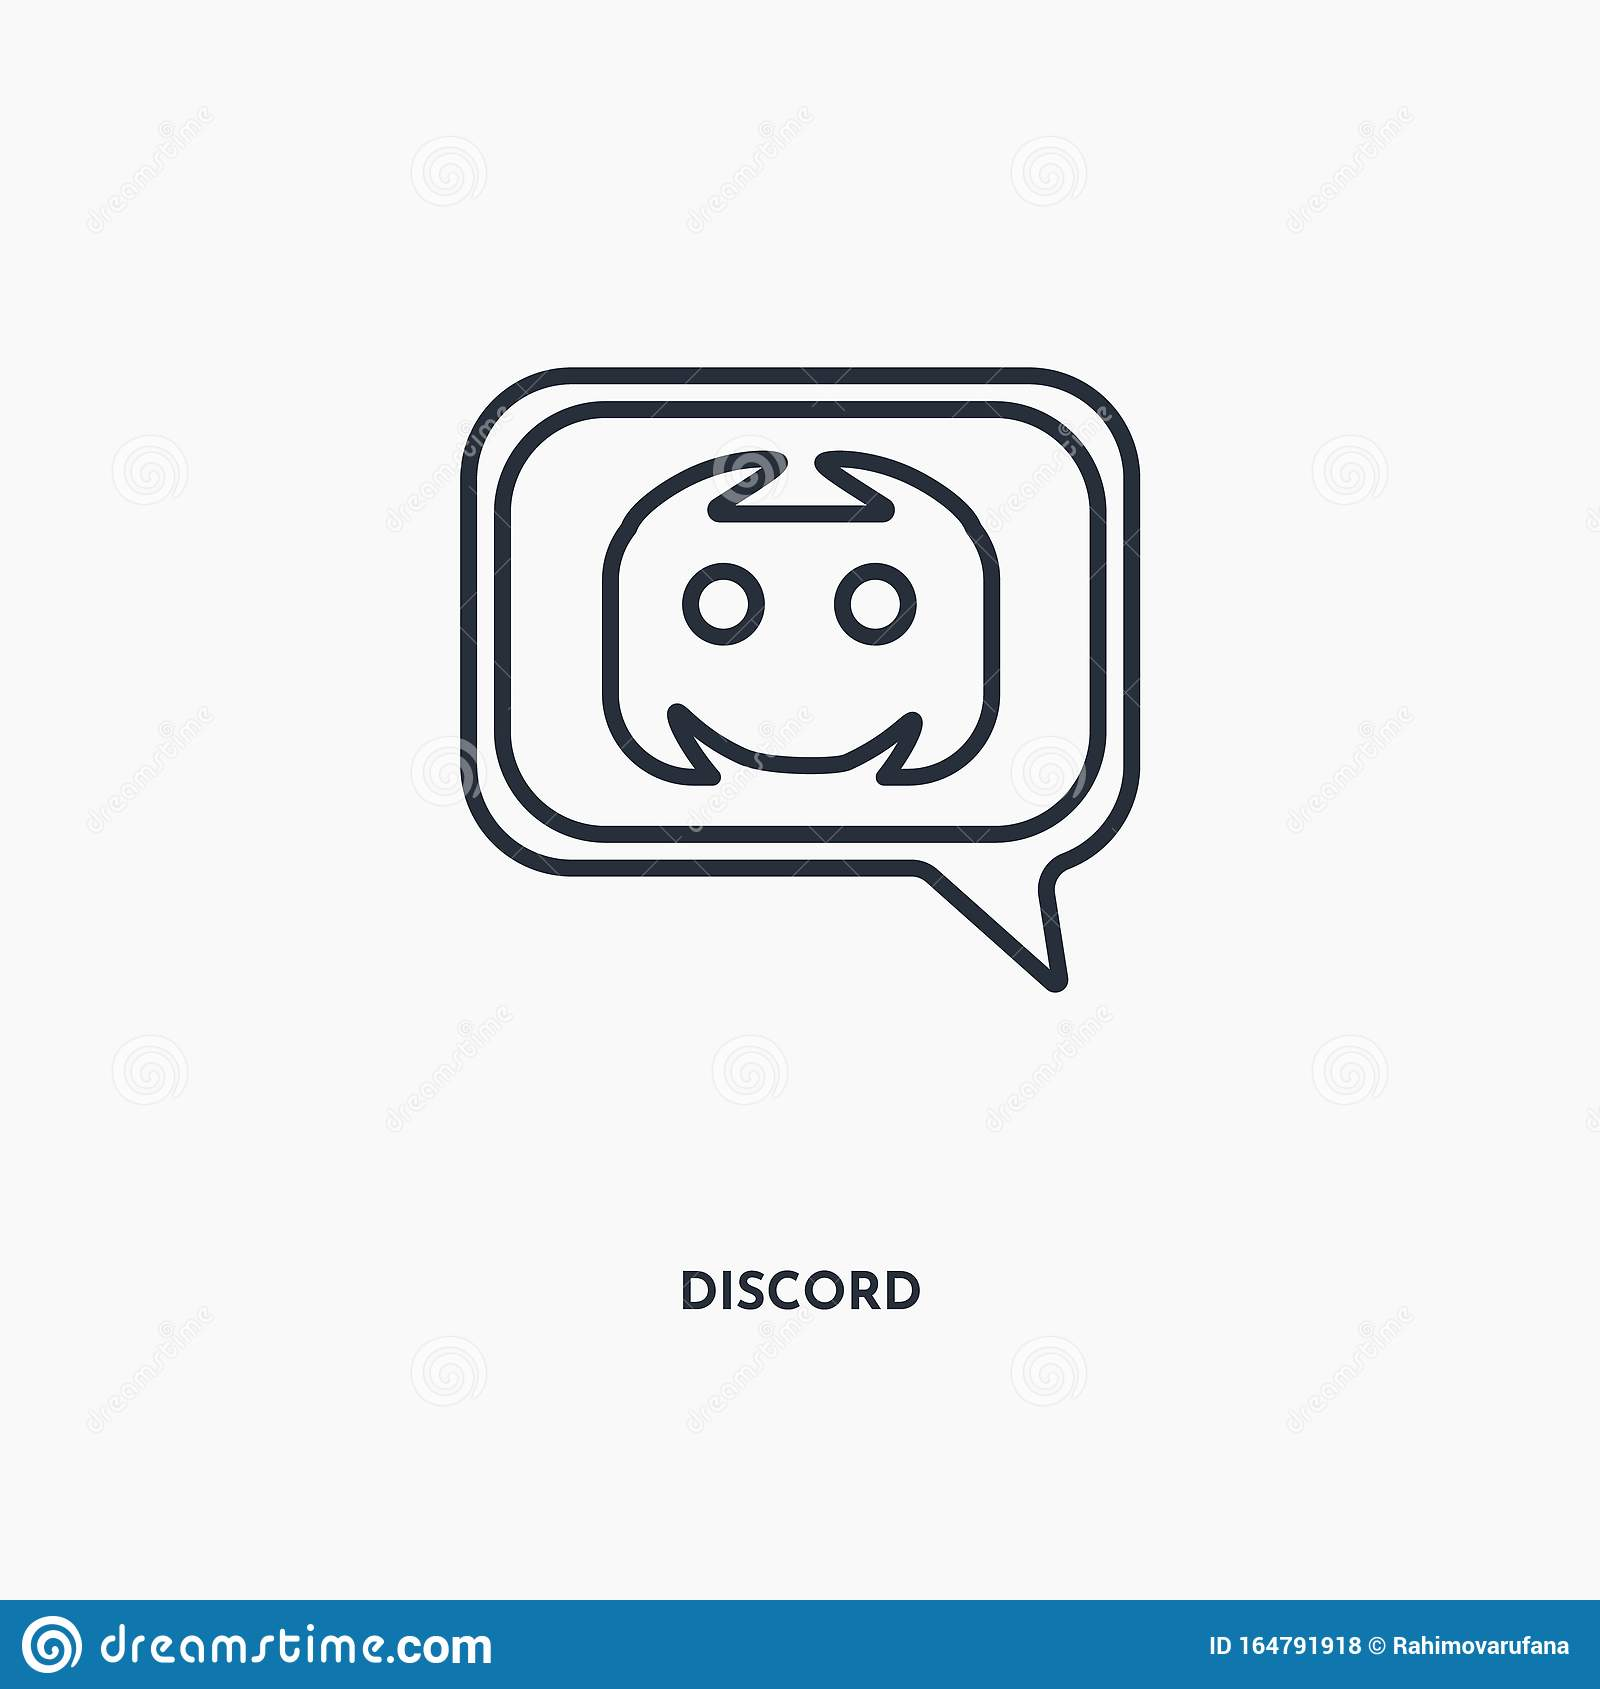 Discord Outline Icon Simple Linear Element Illustration Isolated